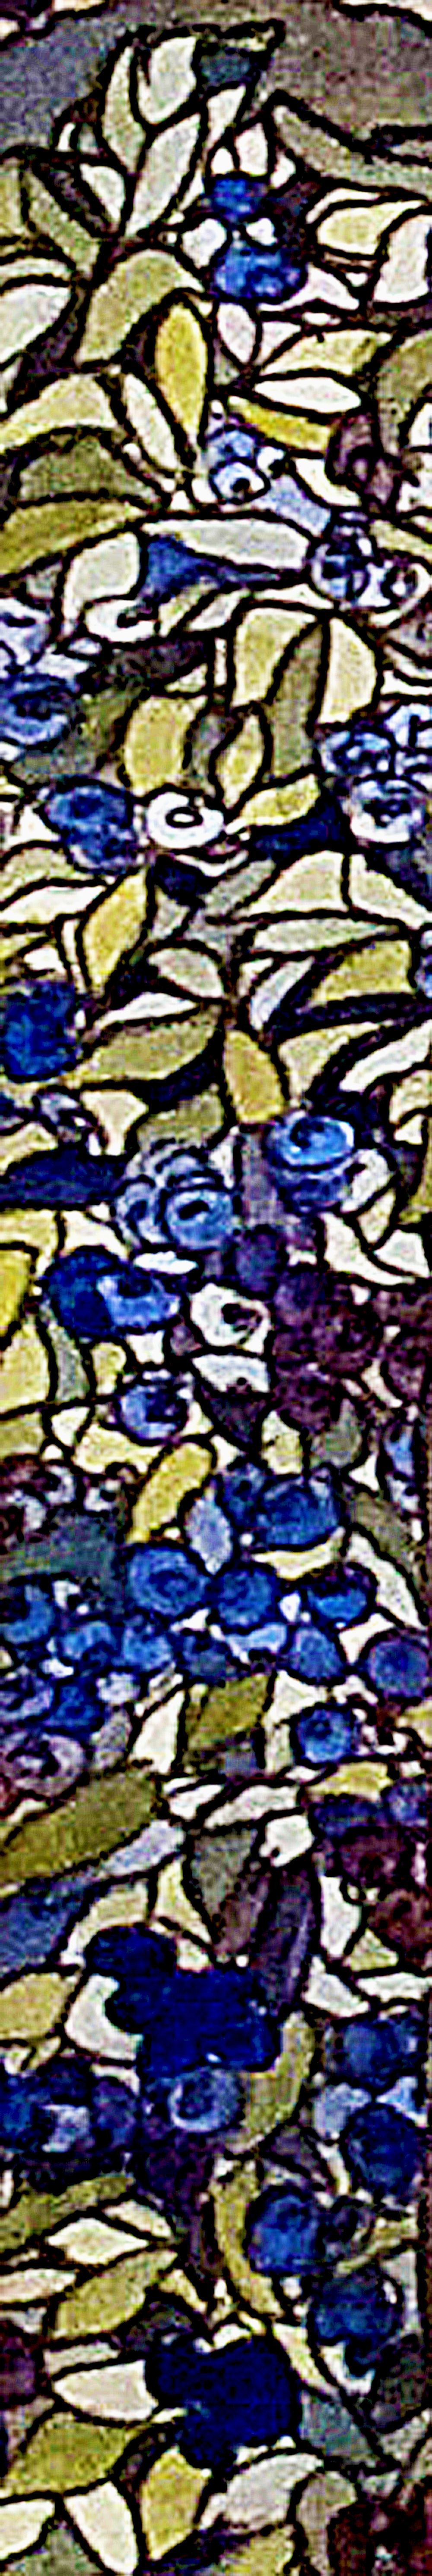 blueberry detail.jpg